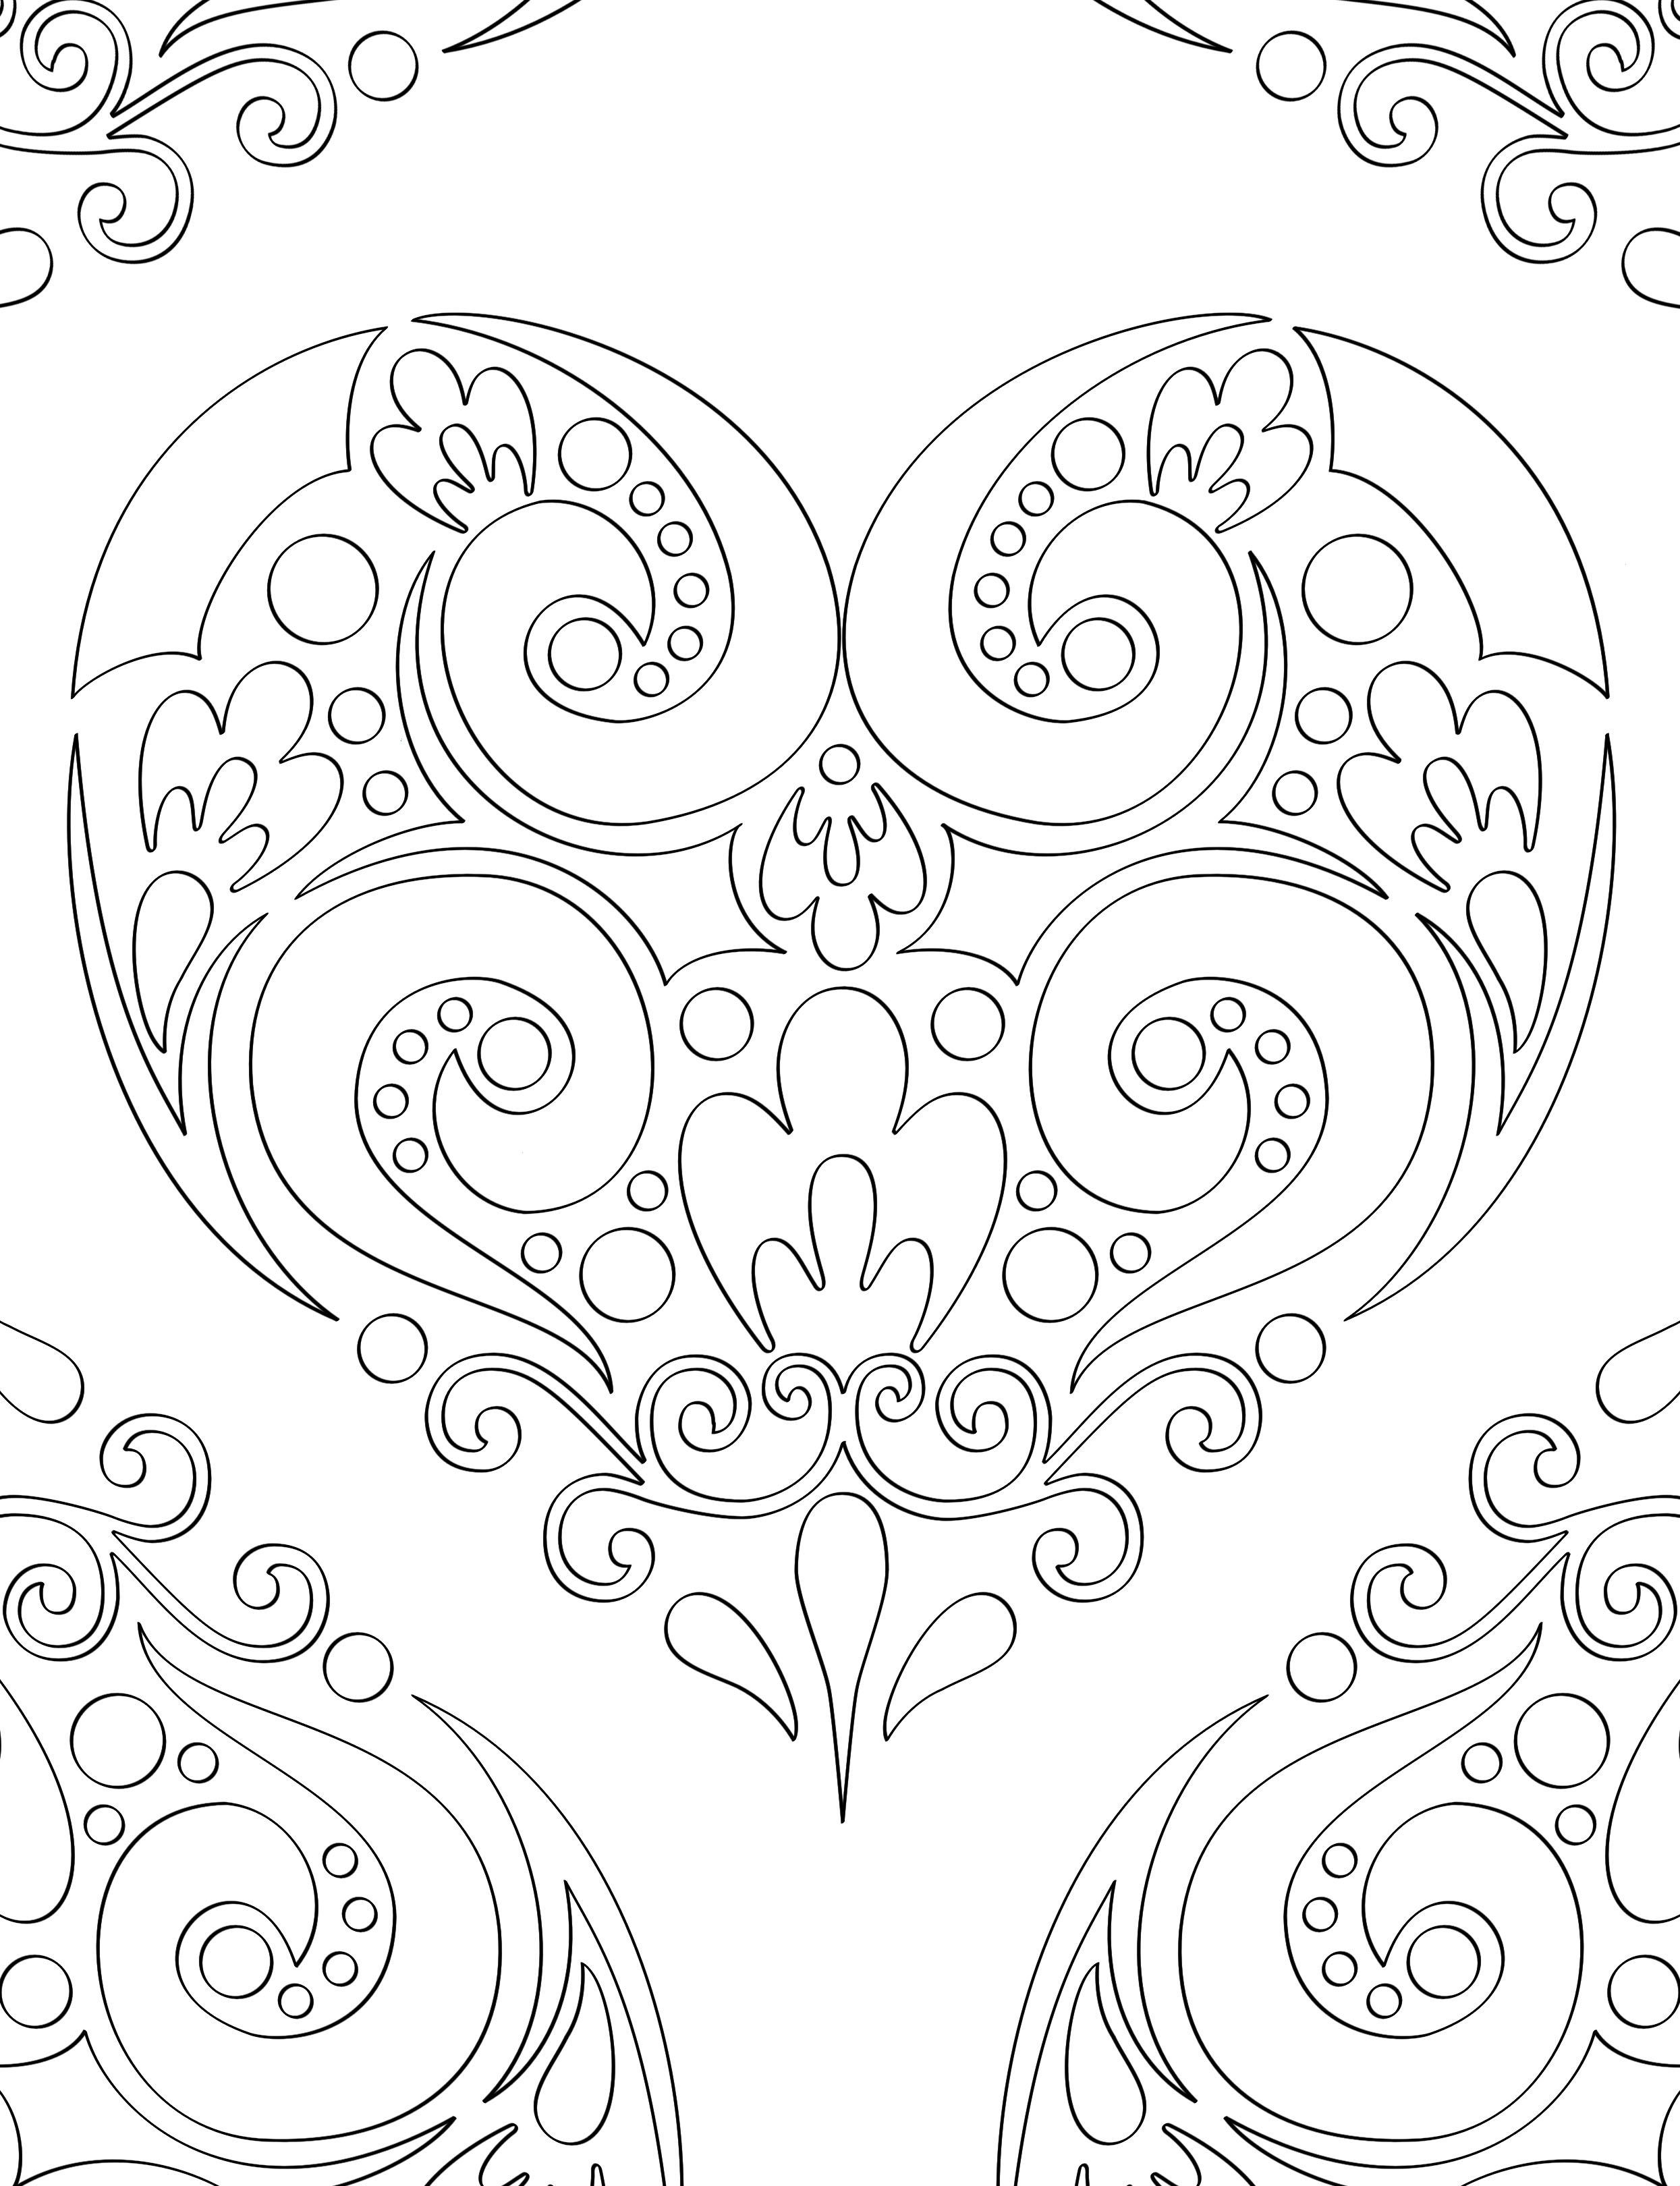 Alice In Wonderland Coloring Pages For Adults  Alice In Wonderland Adult Coloring Book at TFAW